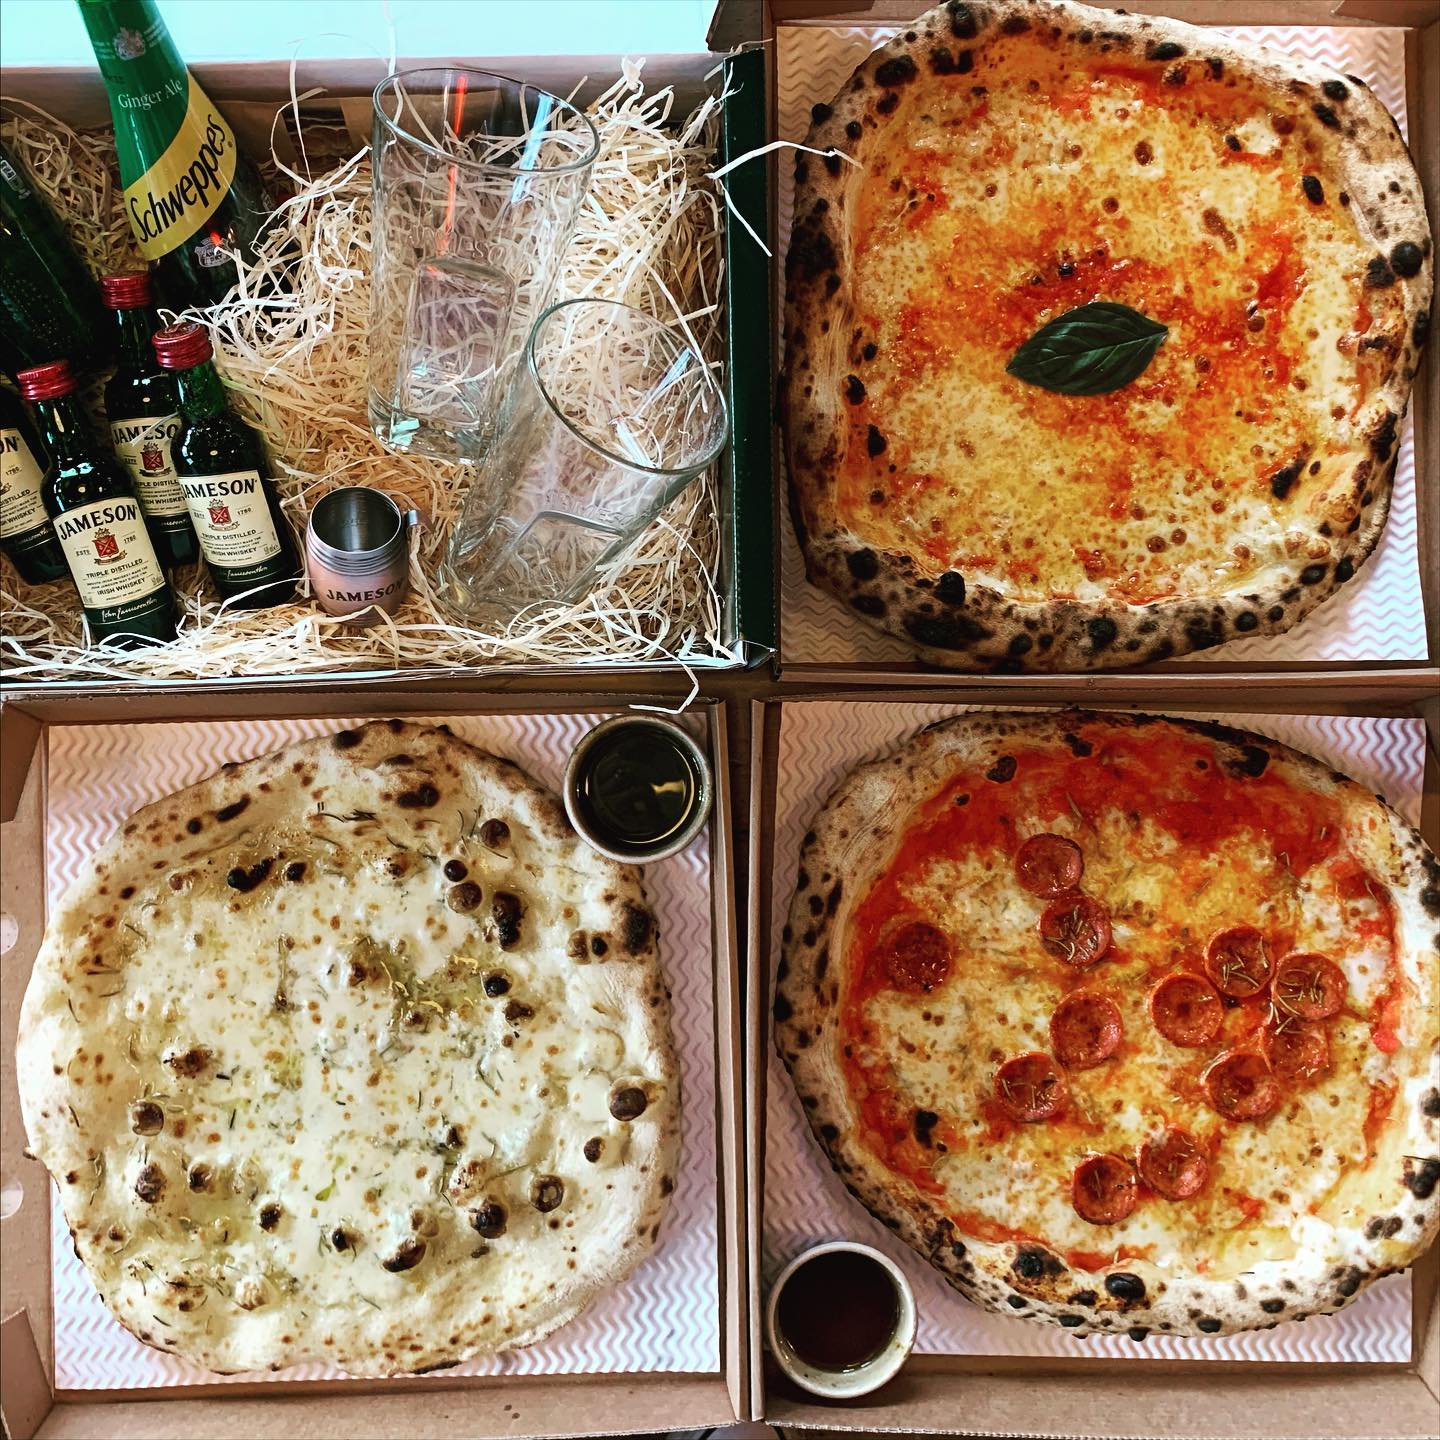 St. Patrick's day is coming up and it might be lockdown but it doesn't mean we can't celebrate! 2 pizzas, garlic bread, 2 dips and this box of treats from Jameson available only on Wednesday! Bundles are £25 while whiskey supplies last 😉please drink responsibly 🥃🍀 . . . #pizza #stpatricksday #hackney #jamesonsmasterclass #youwantapizzame #delivery #sweetdeal